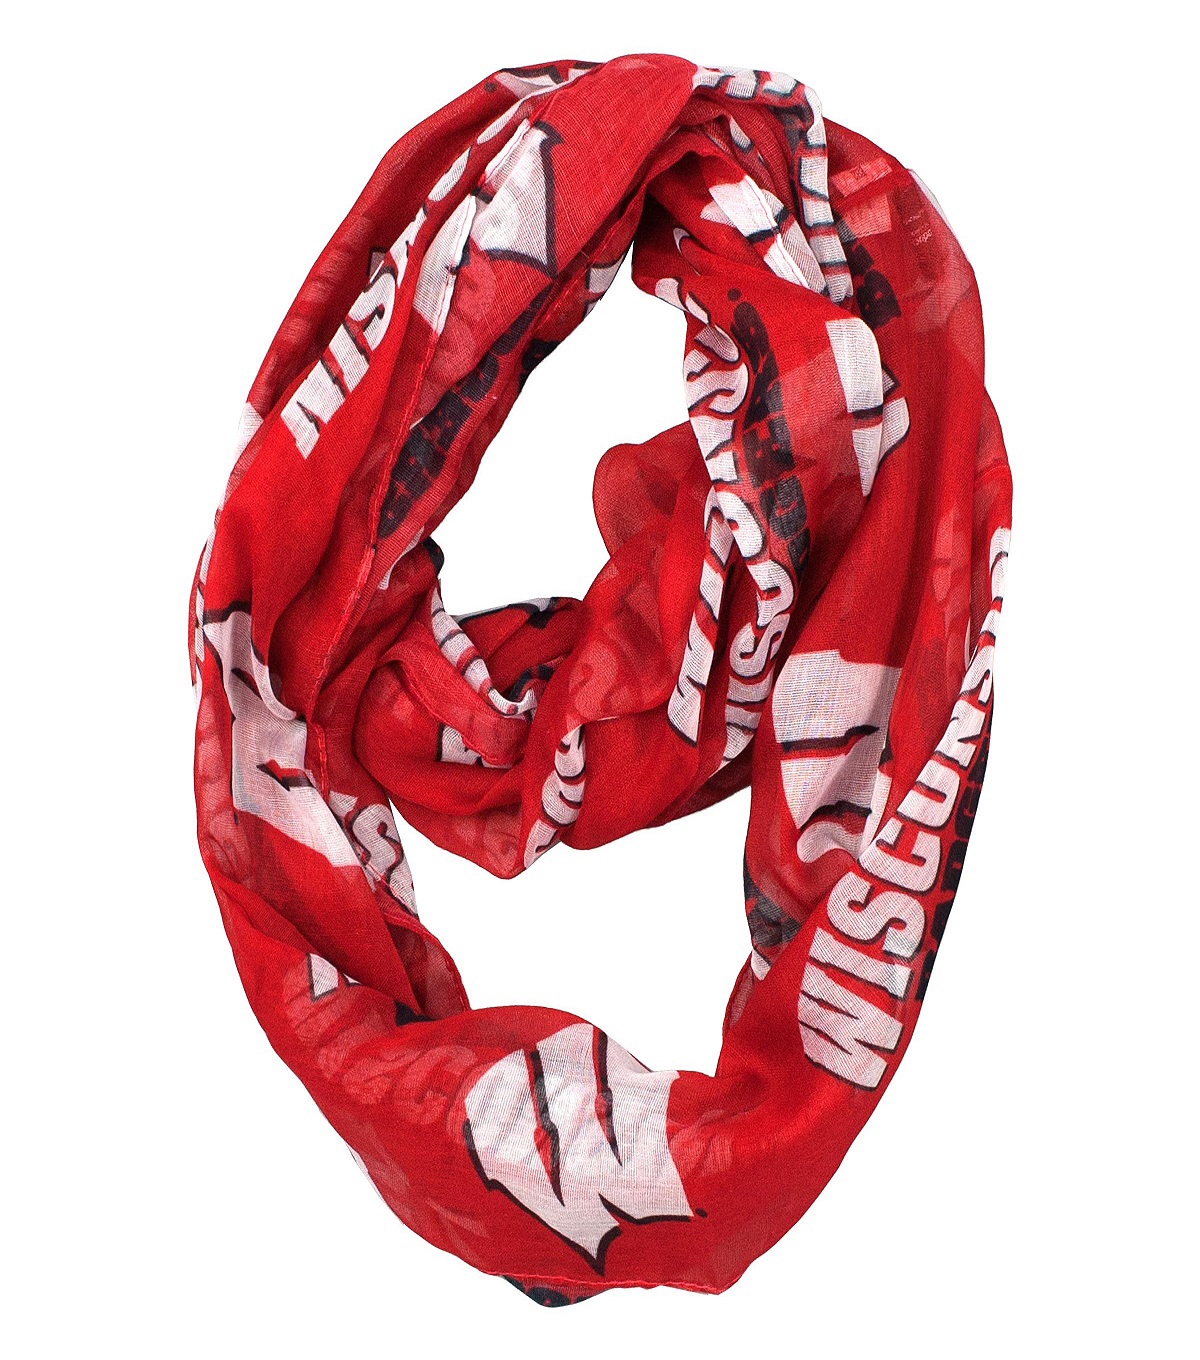 University of Wisconsin Badgers Infinity Scarf